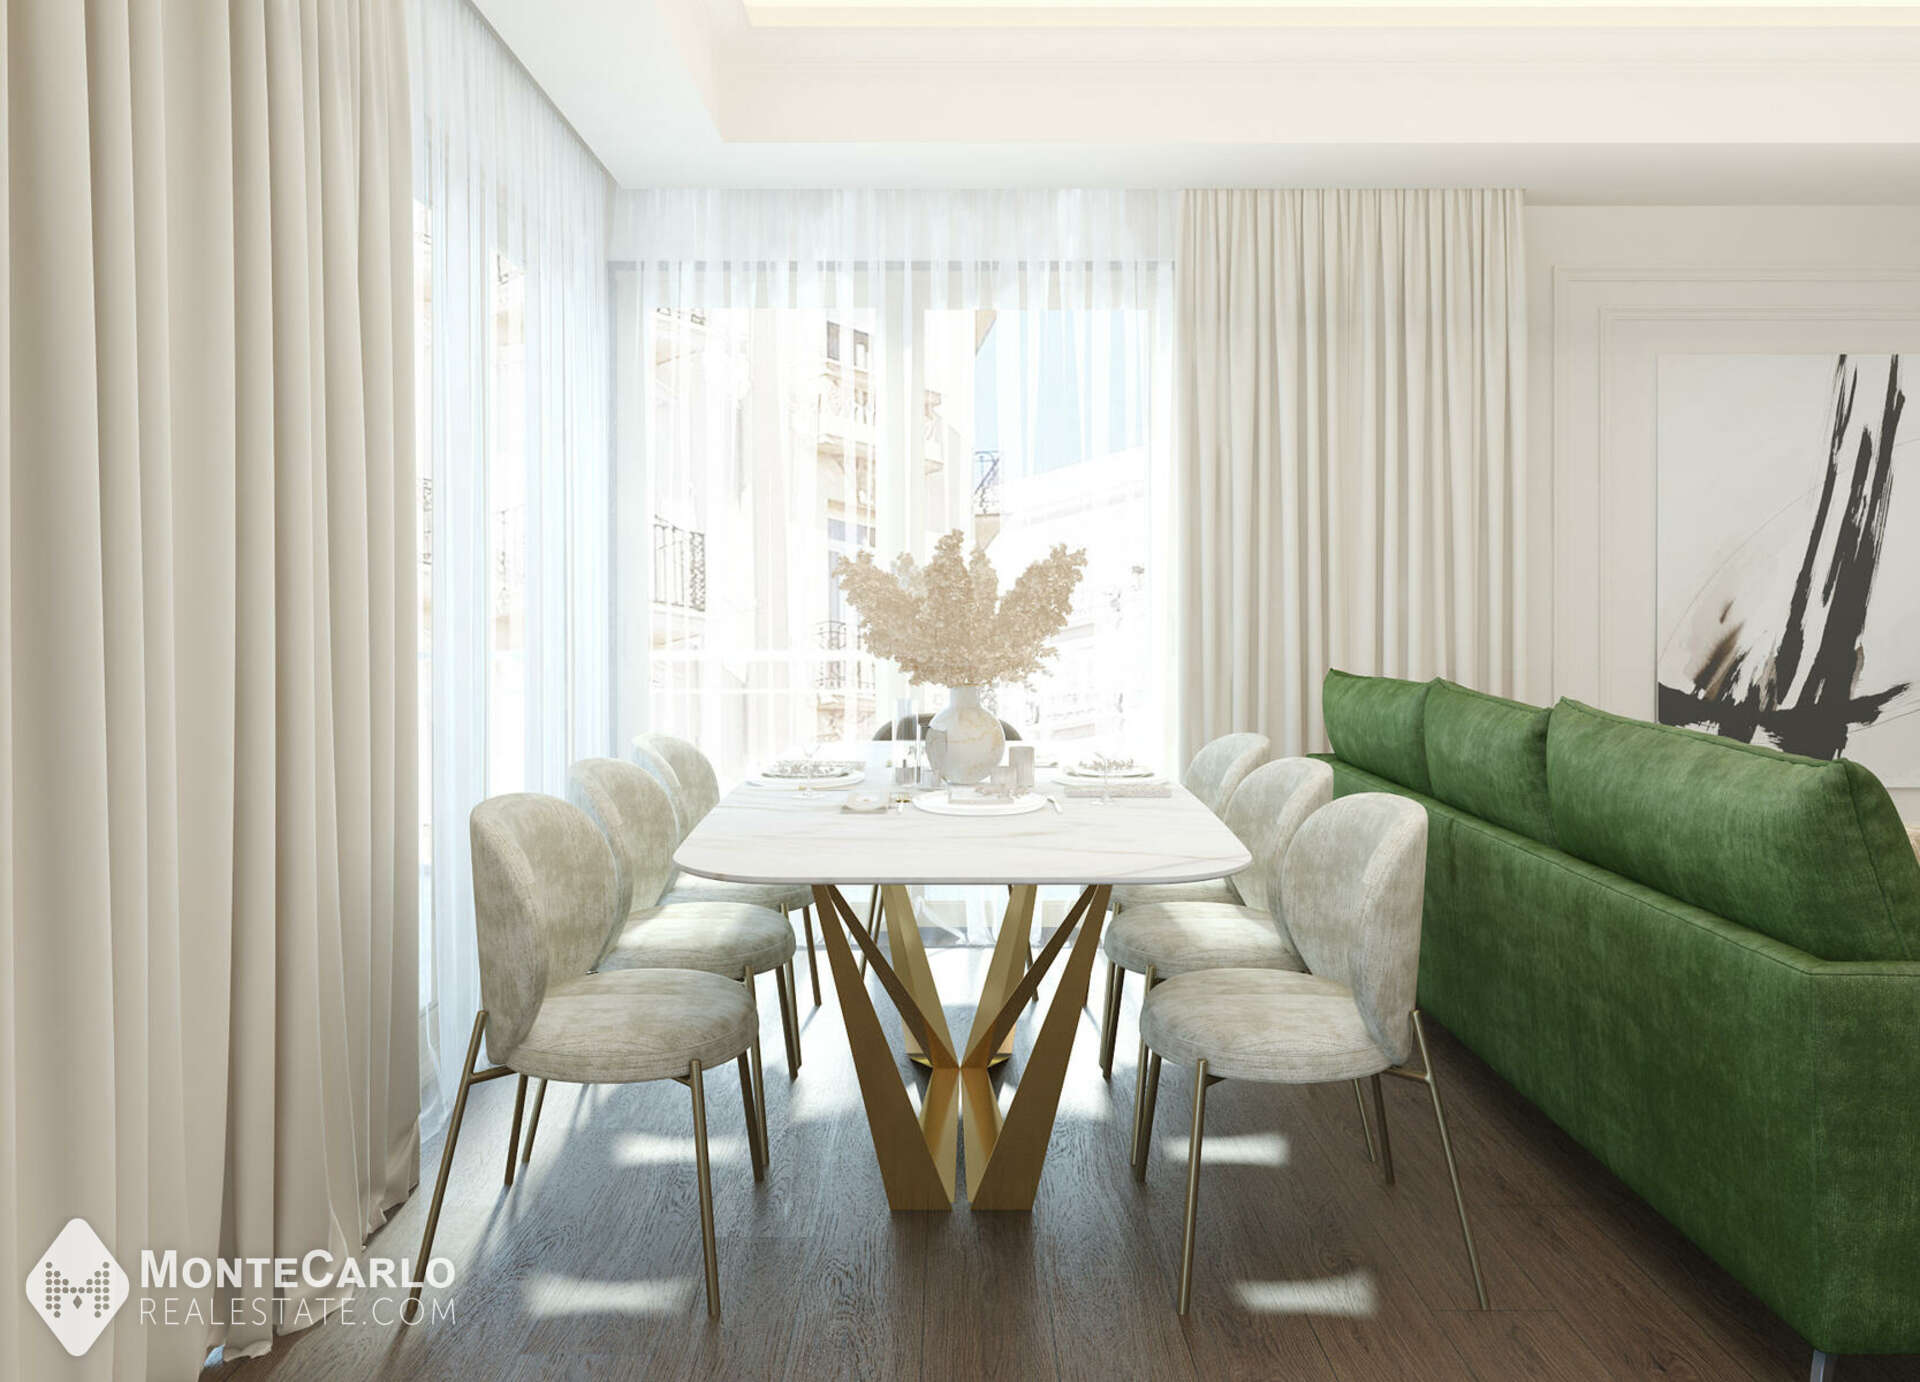 For sale Roqueville - Apartment / 4 rooms : 4 950 000 €   Monte-Carlo Real Estate [ROQ1]